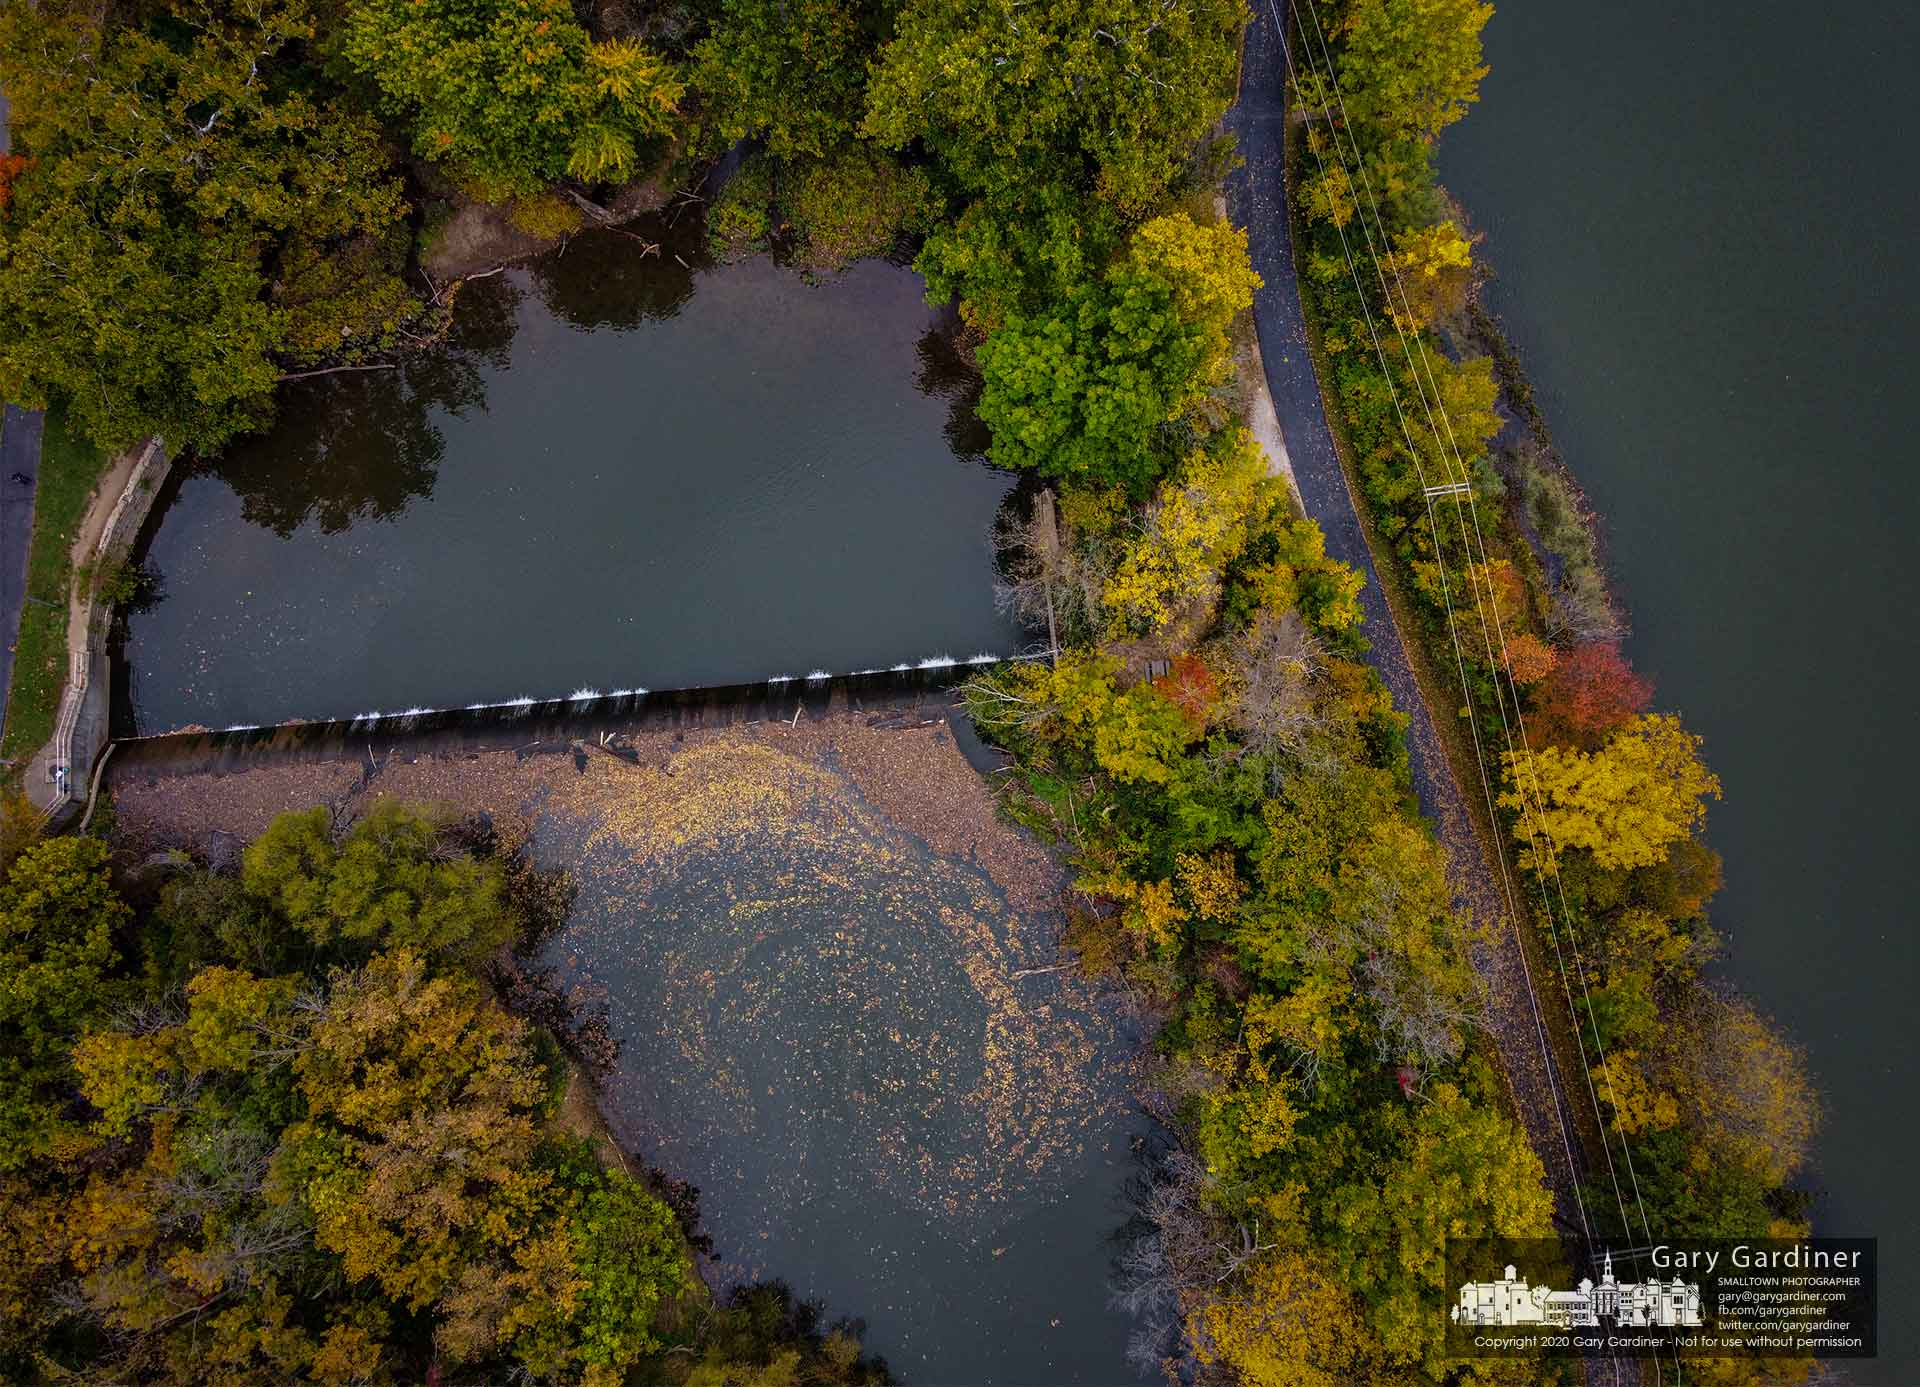 Fall leaves gather in a swirl behind the Alum Creek Park low-head dam as the days get shorter and colder and the creek's water level remains low. My Final Photo for Oct. 10, 2020.